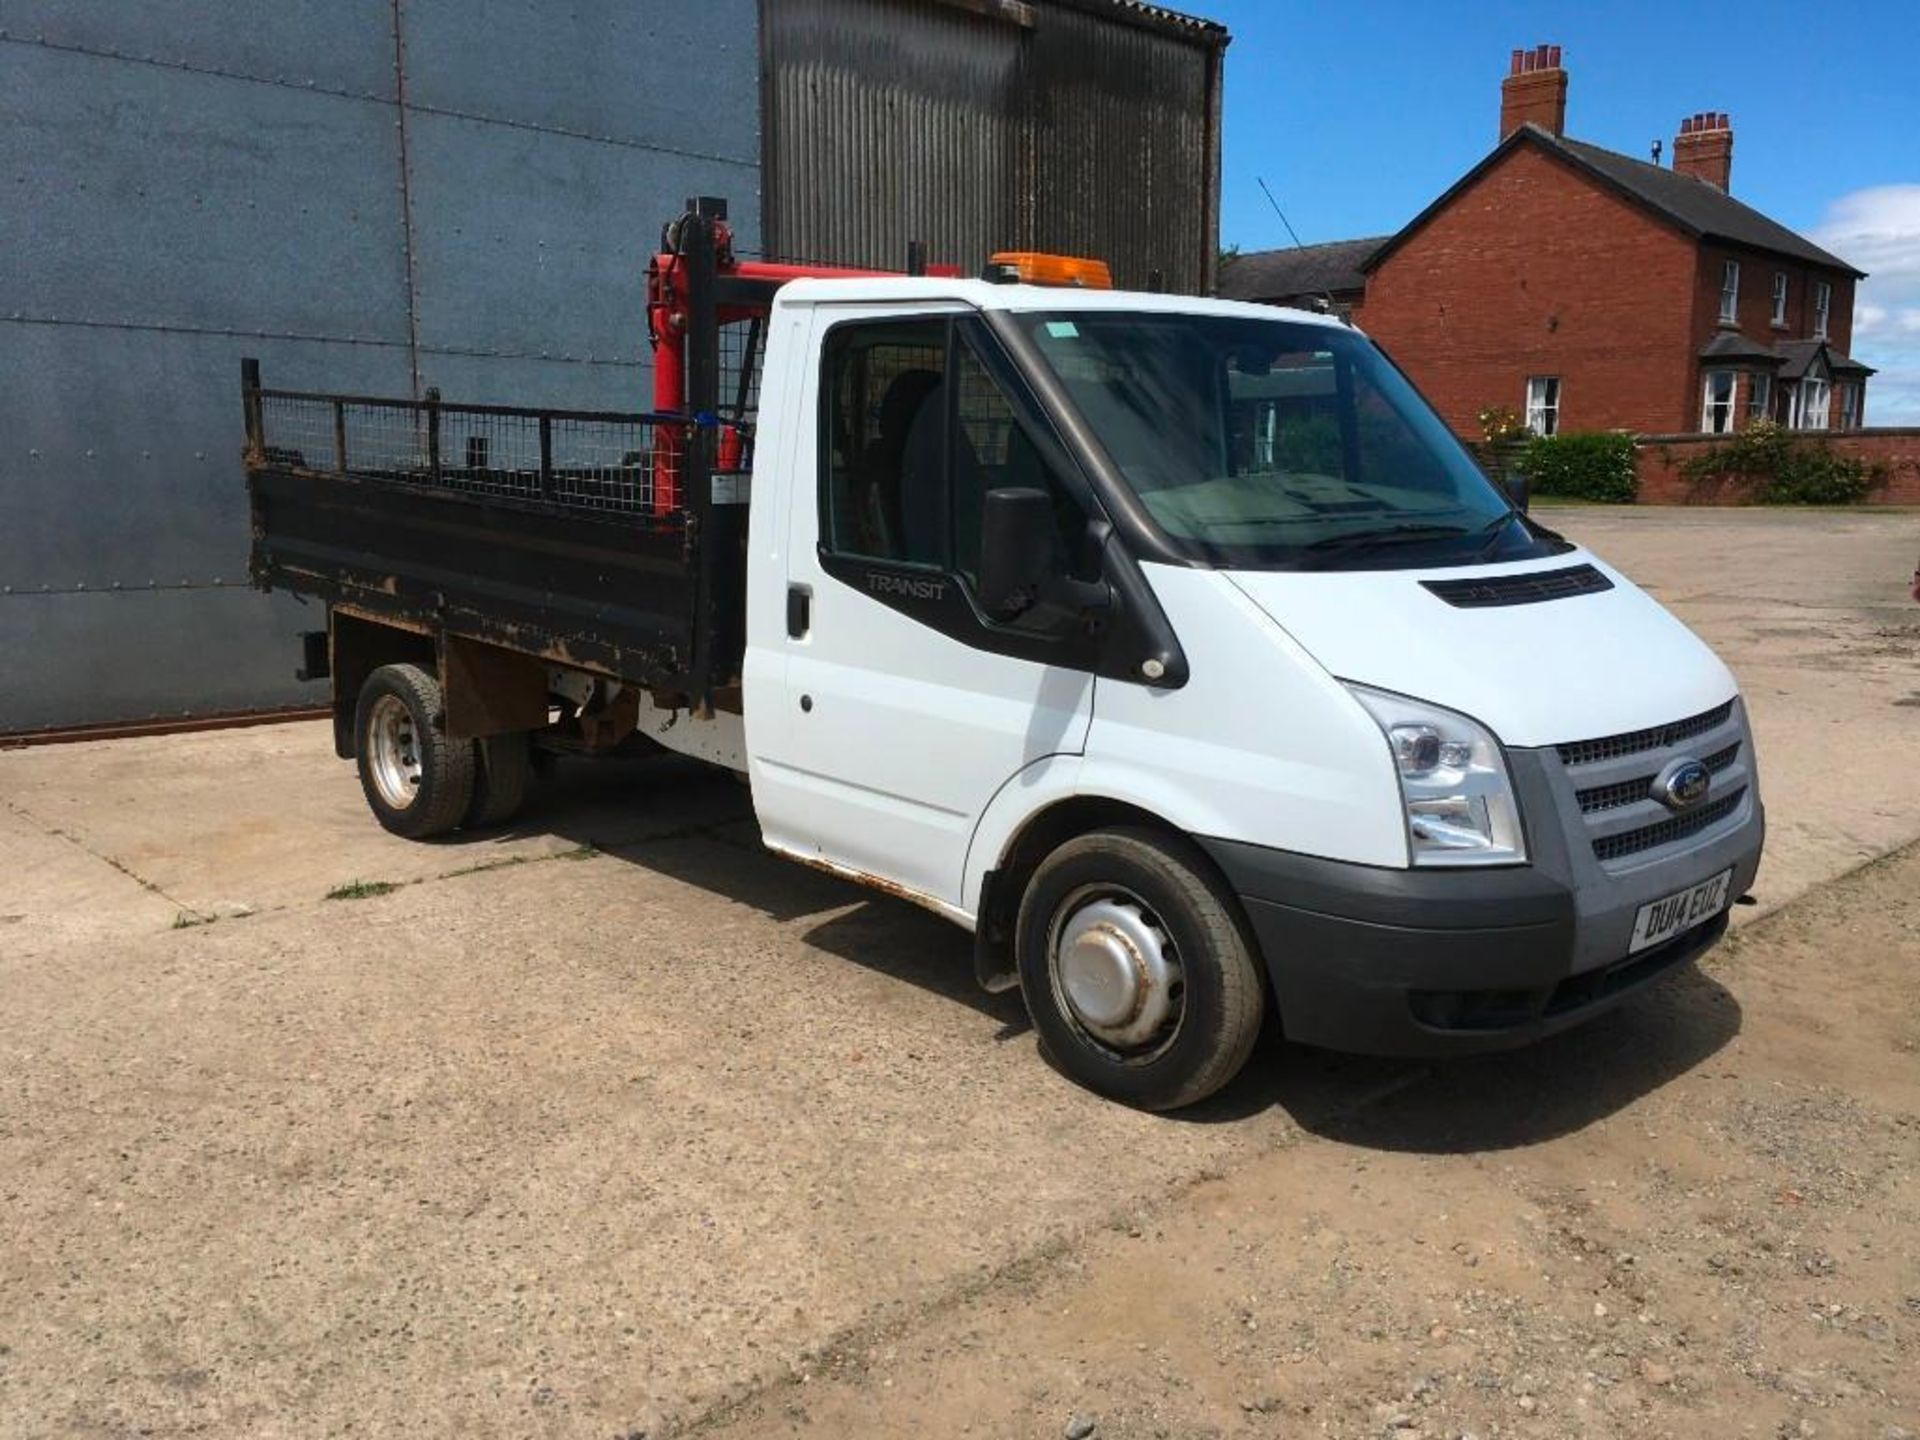 2014 Ford Transit 100 T350 with Brit-Tipp tipping body c/w independently manufactured crane with 0.5 - Image 2 of 10